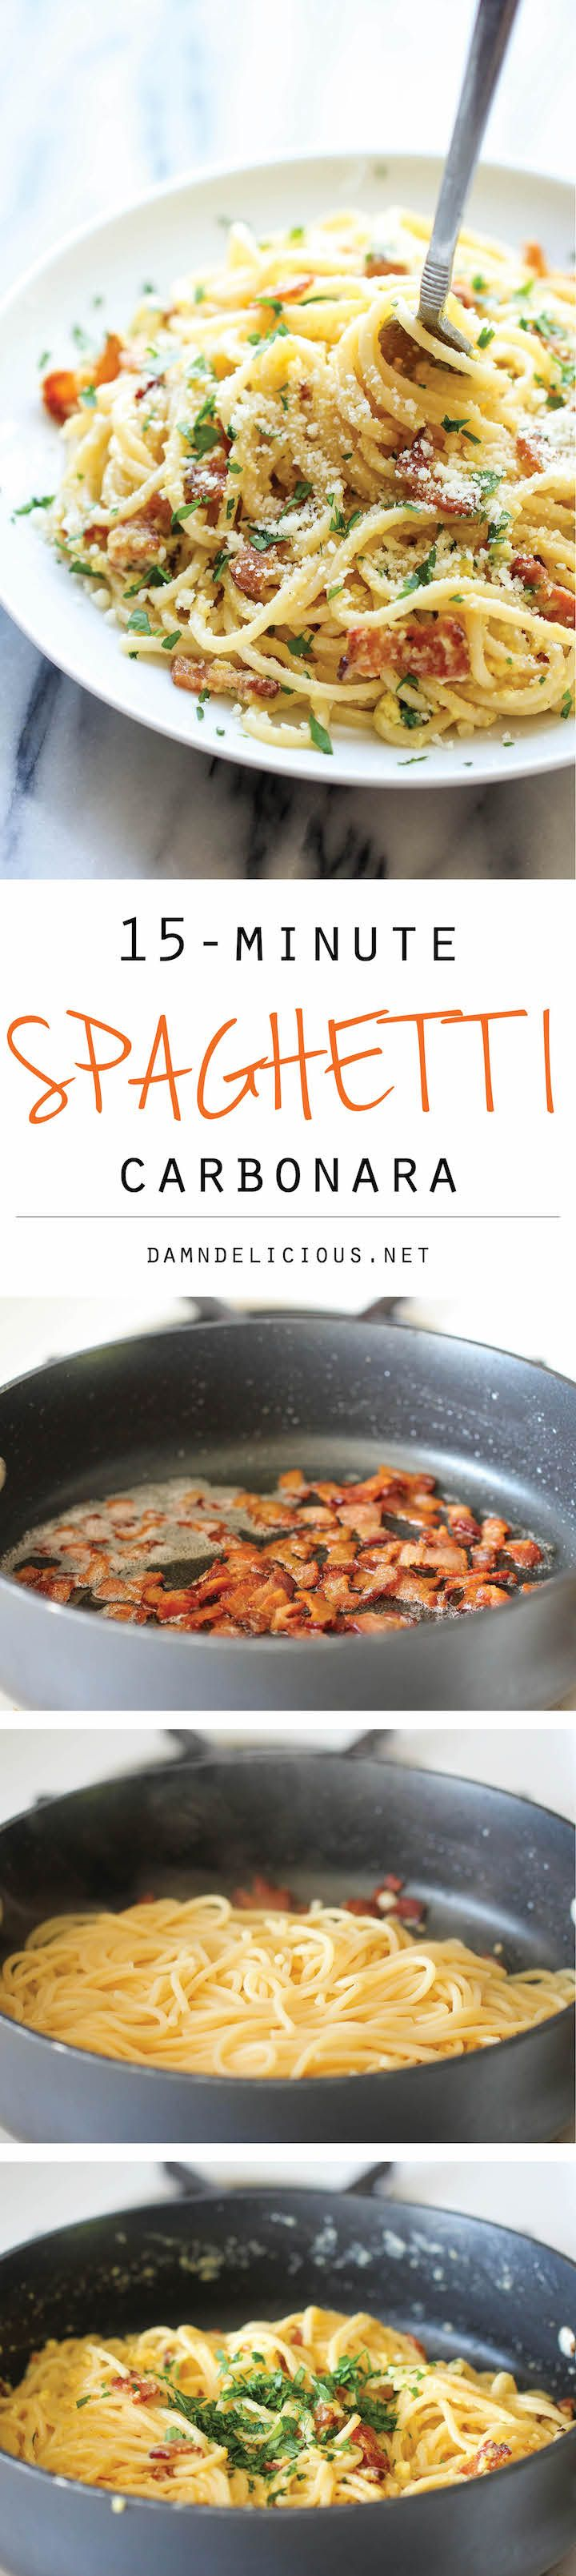 Spaghetti Carbonara - The easiest pasta dish you will ever make with just 5 ingredients in 15 minutes, loaded with Parmesan and bacon!